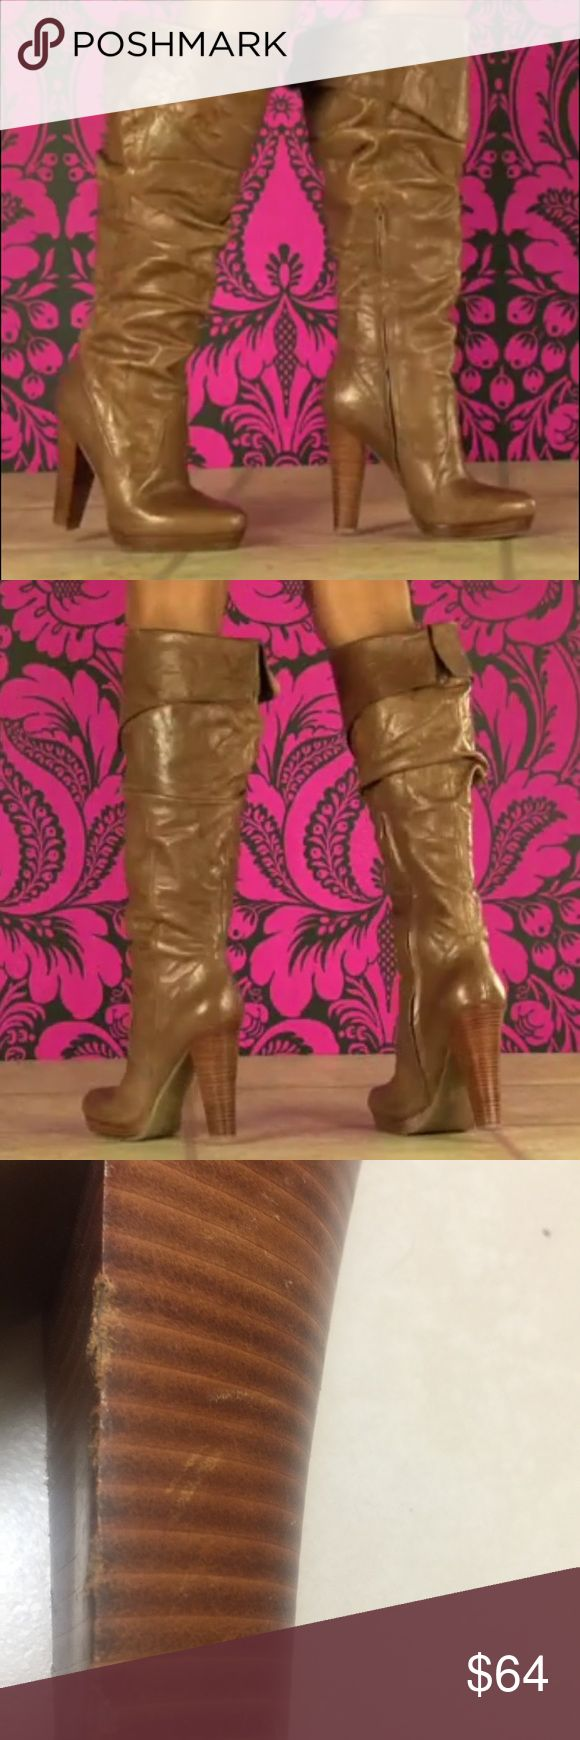 On Trend Knee Boots for the Fall Season These knee boots offer a stitched light brown leather with a slightly pointed toe. The boot features a side zipper and top fold detail. A 4 ½ inch heel and ¾ inch platform complete this style. Imperfection of nix on inner heel of one boot. Not noticeable (see pic).                                   Ships Same Day when Order is Received by 3pm EST M-F; 10am EST Saturday   No Trades, No Modeling Items  Serious Offers and Inquires Always Welcomed  Jessica…